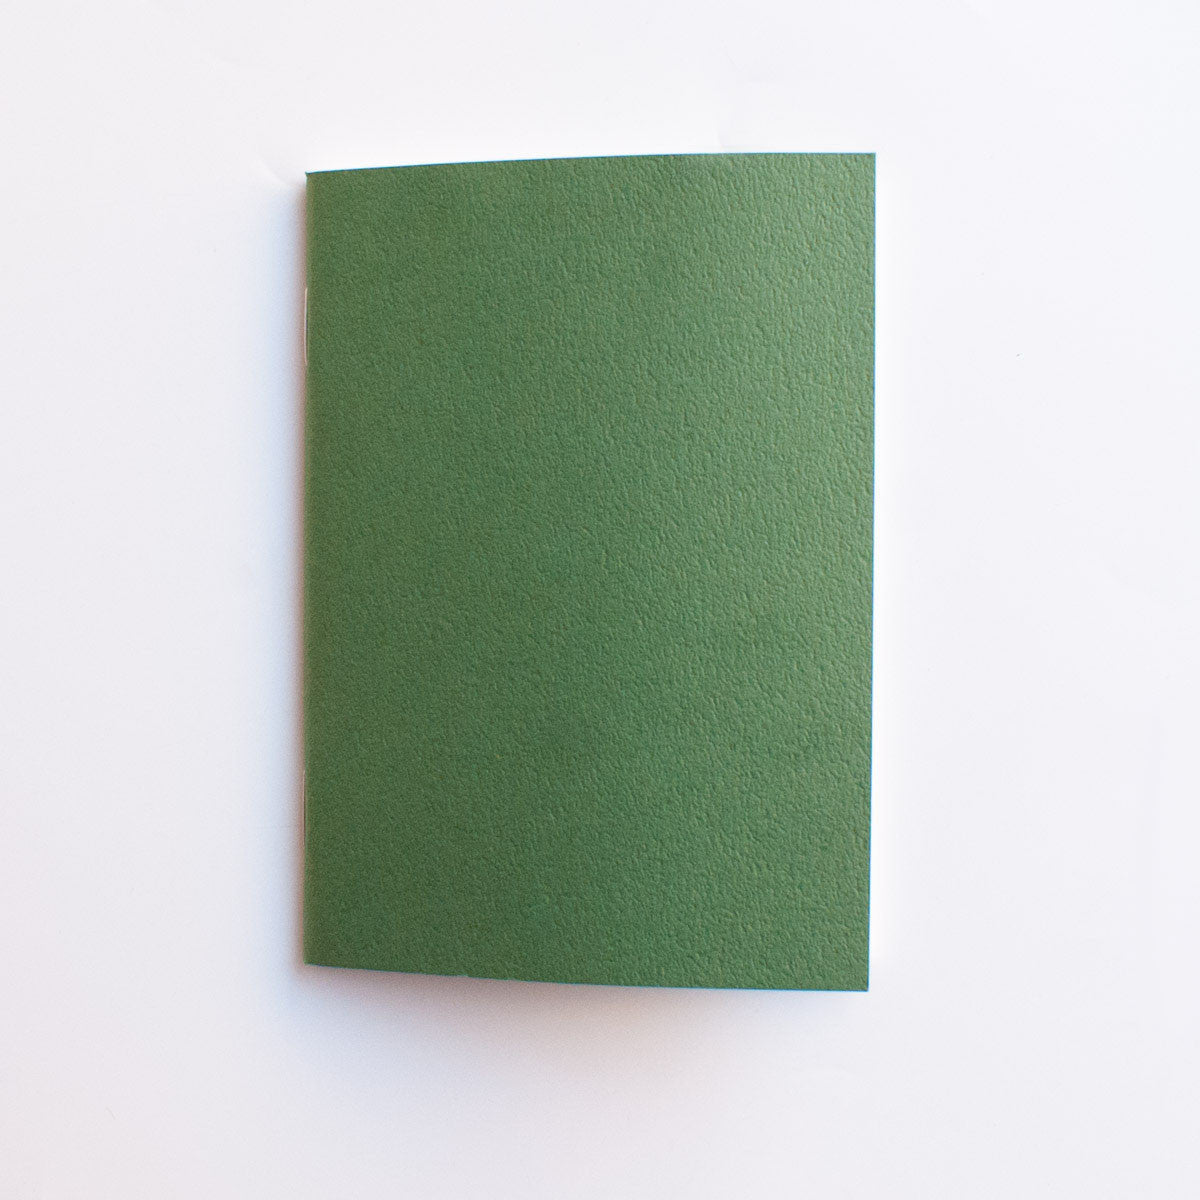 Midori Traveler's Note Passport: 002 Grid Notebook Refill